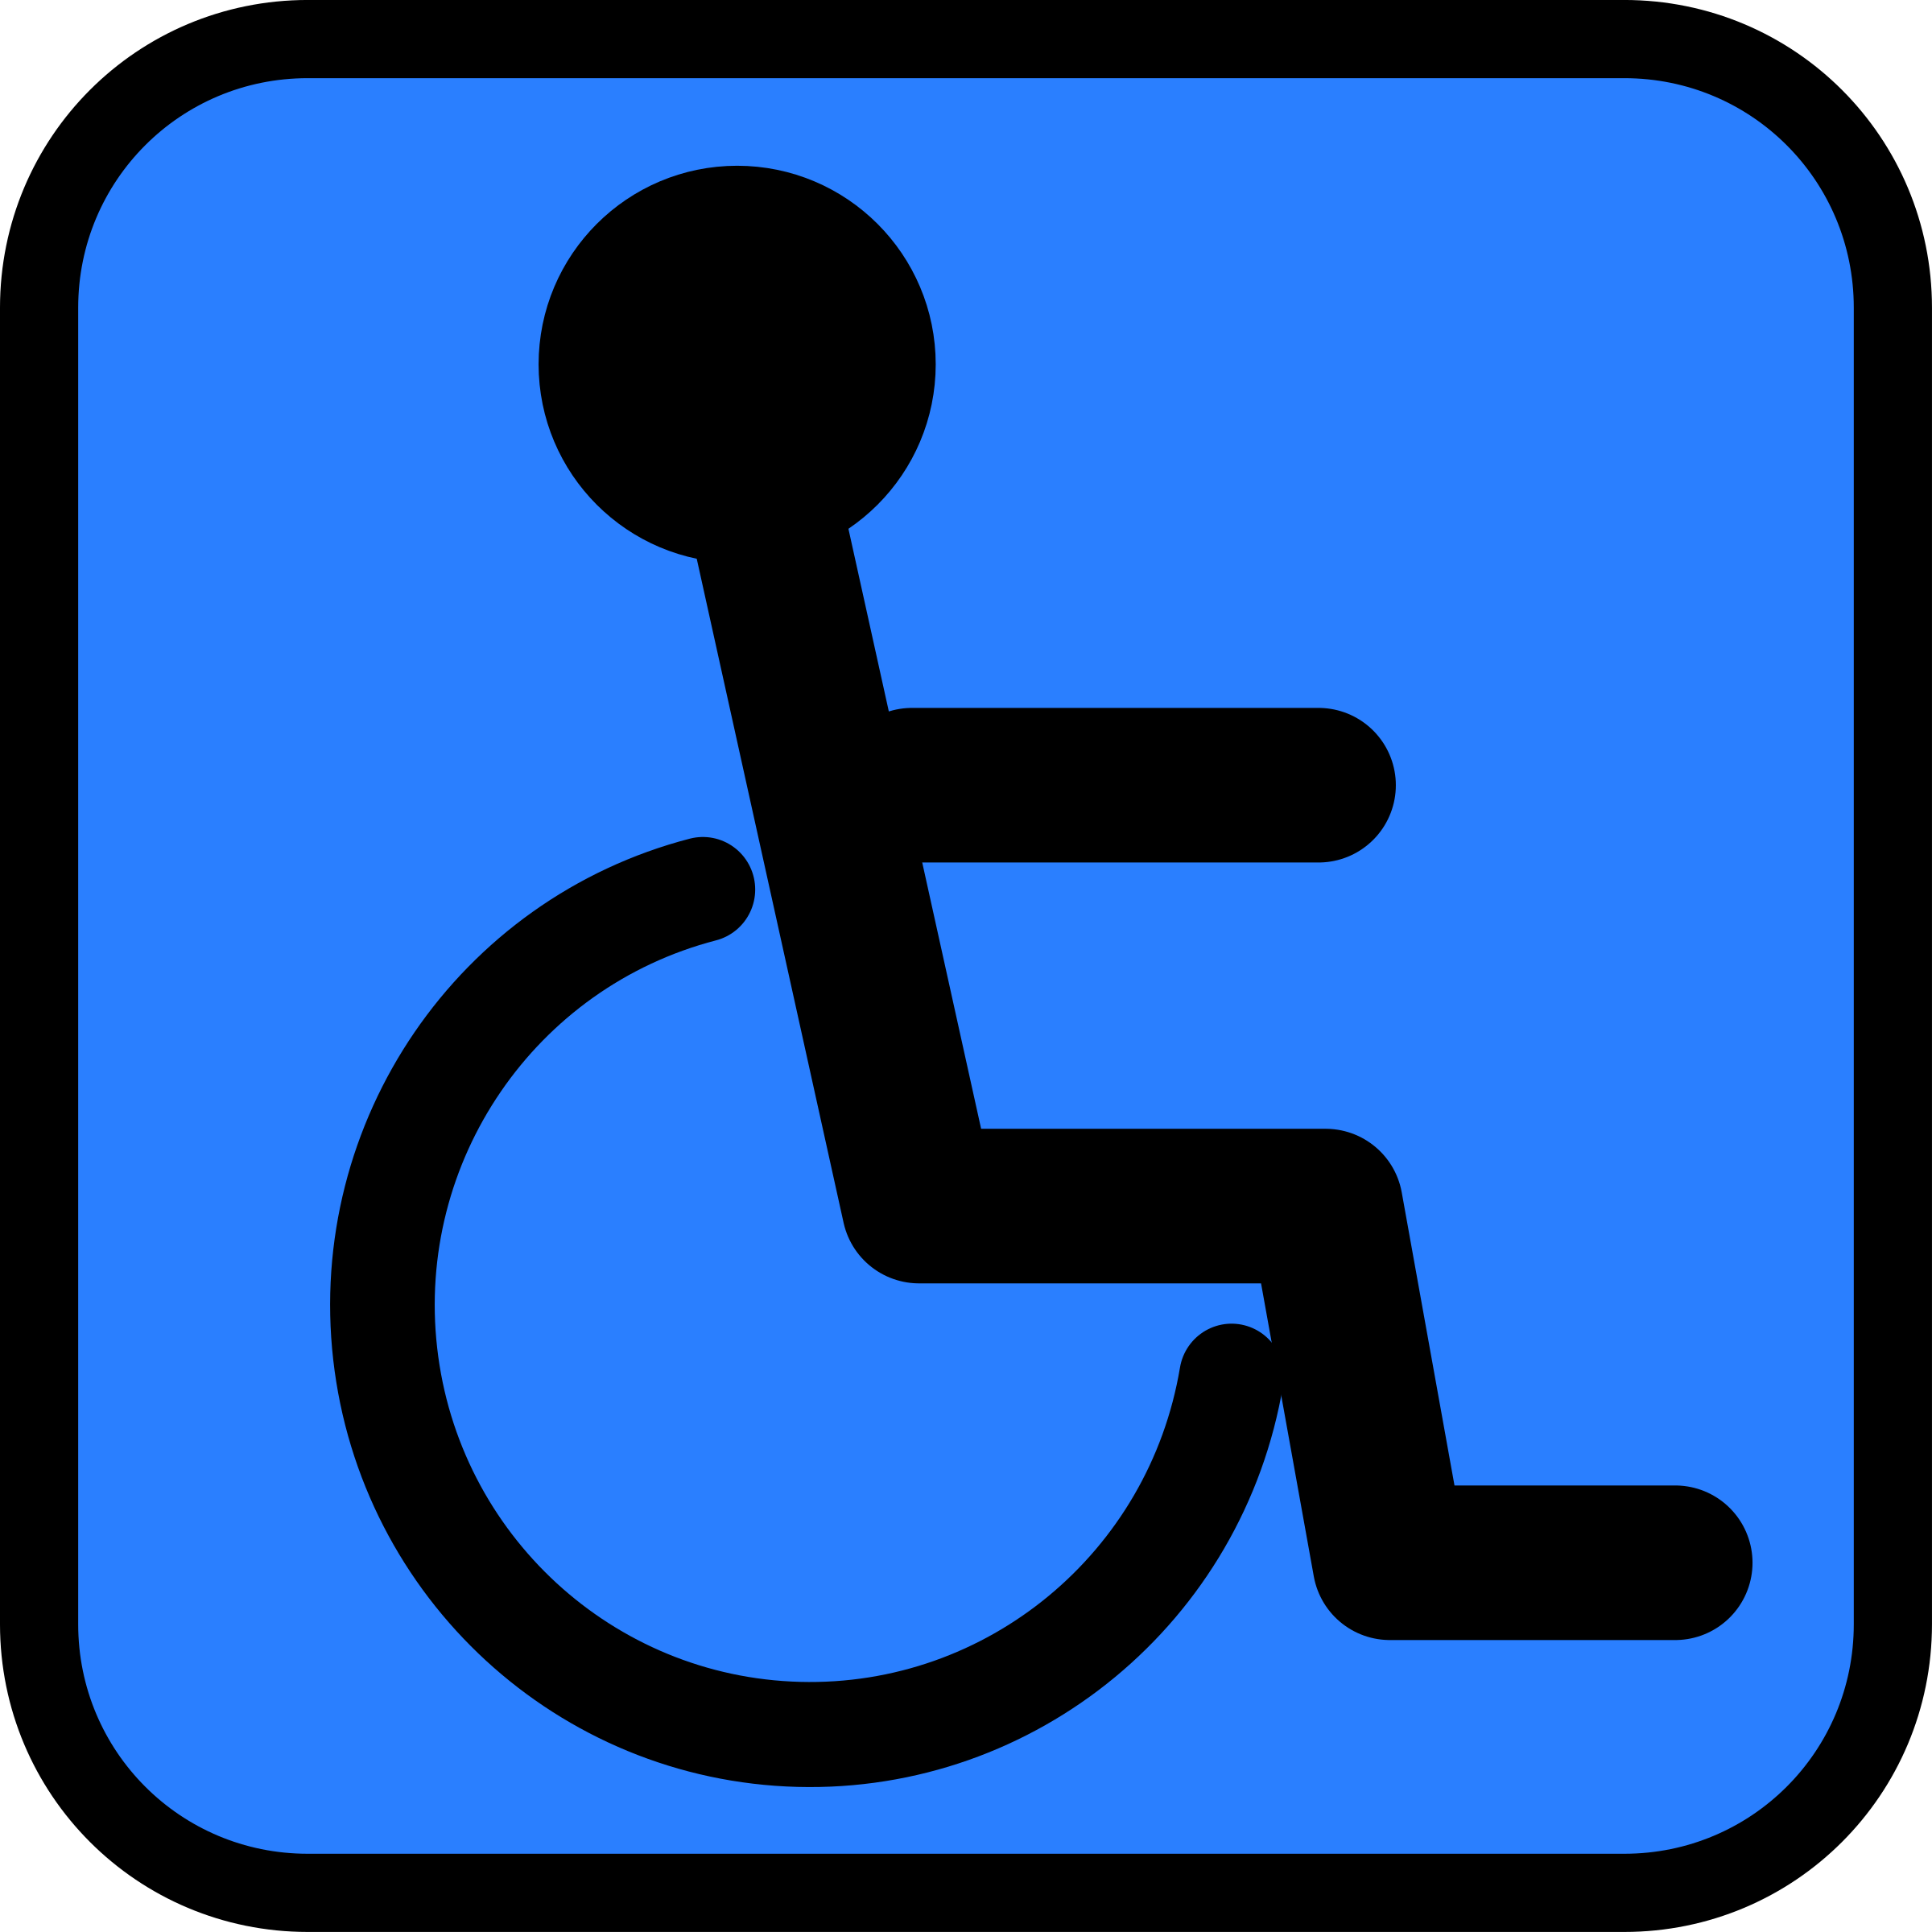 Accessible sign by Tavin